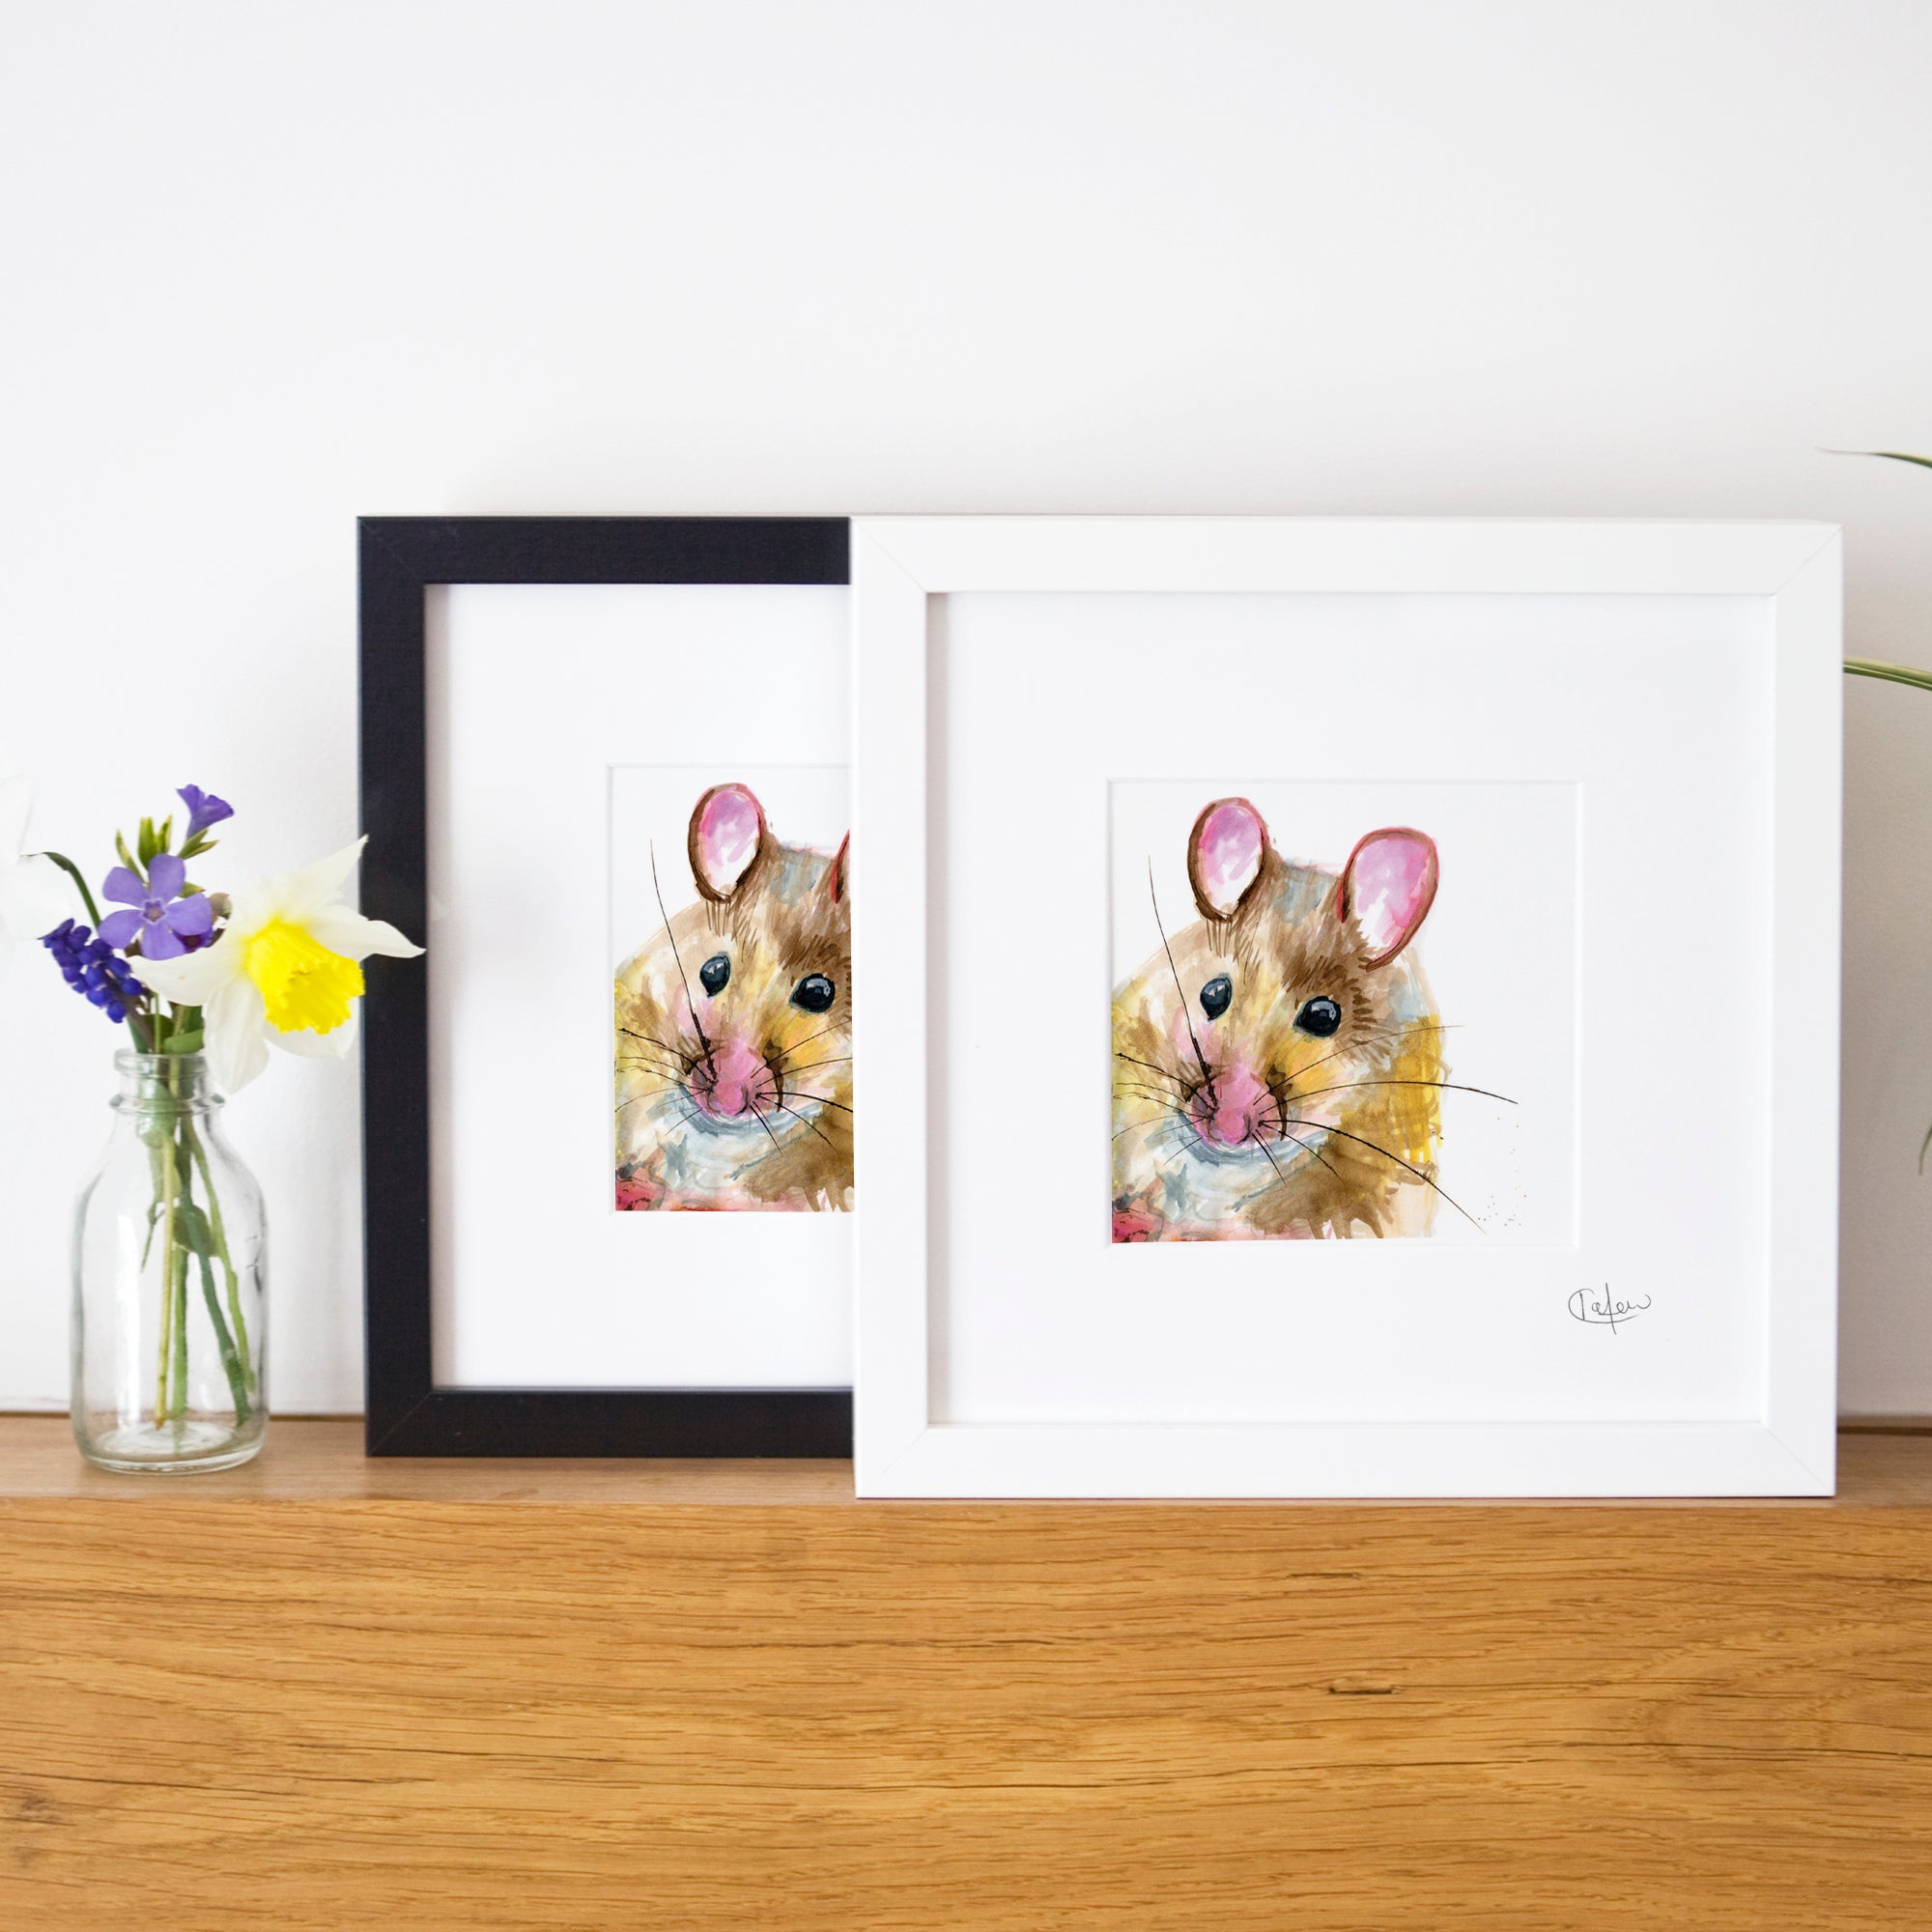 Inky Mouse Illustration Print by Kate Moby on OOSTOR.com